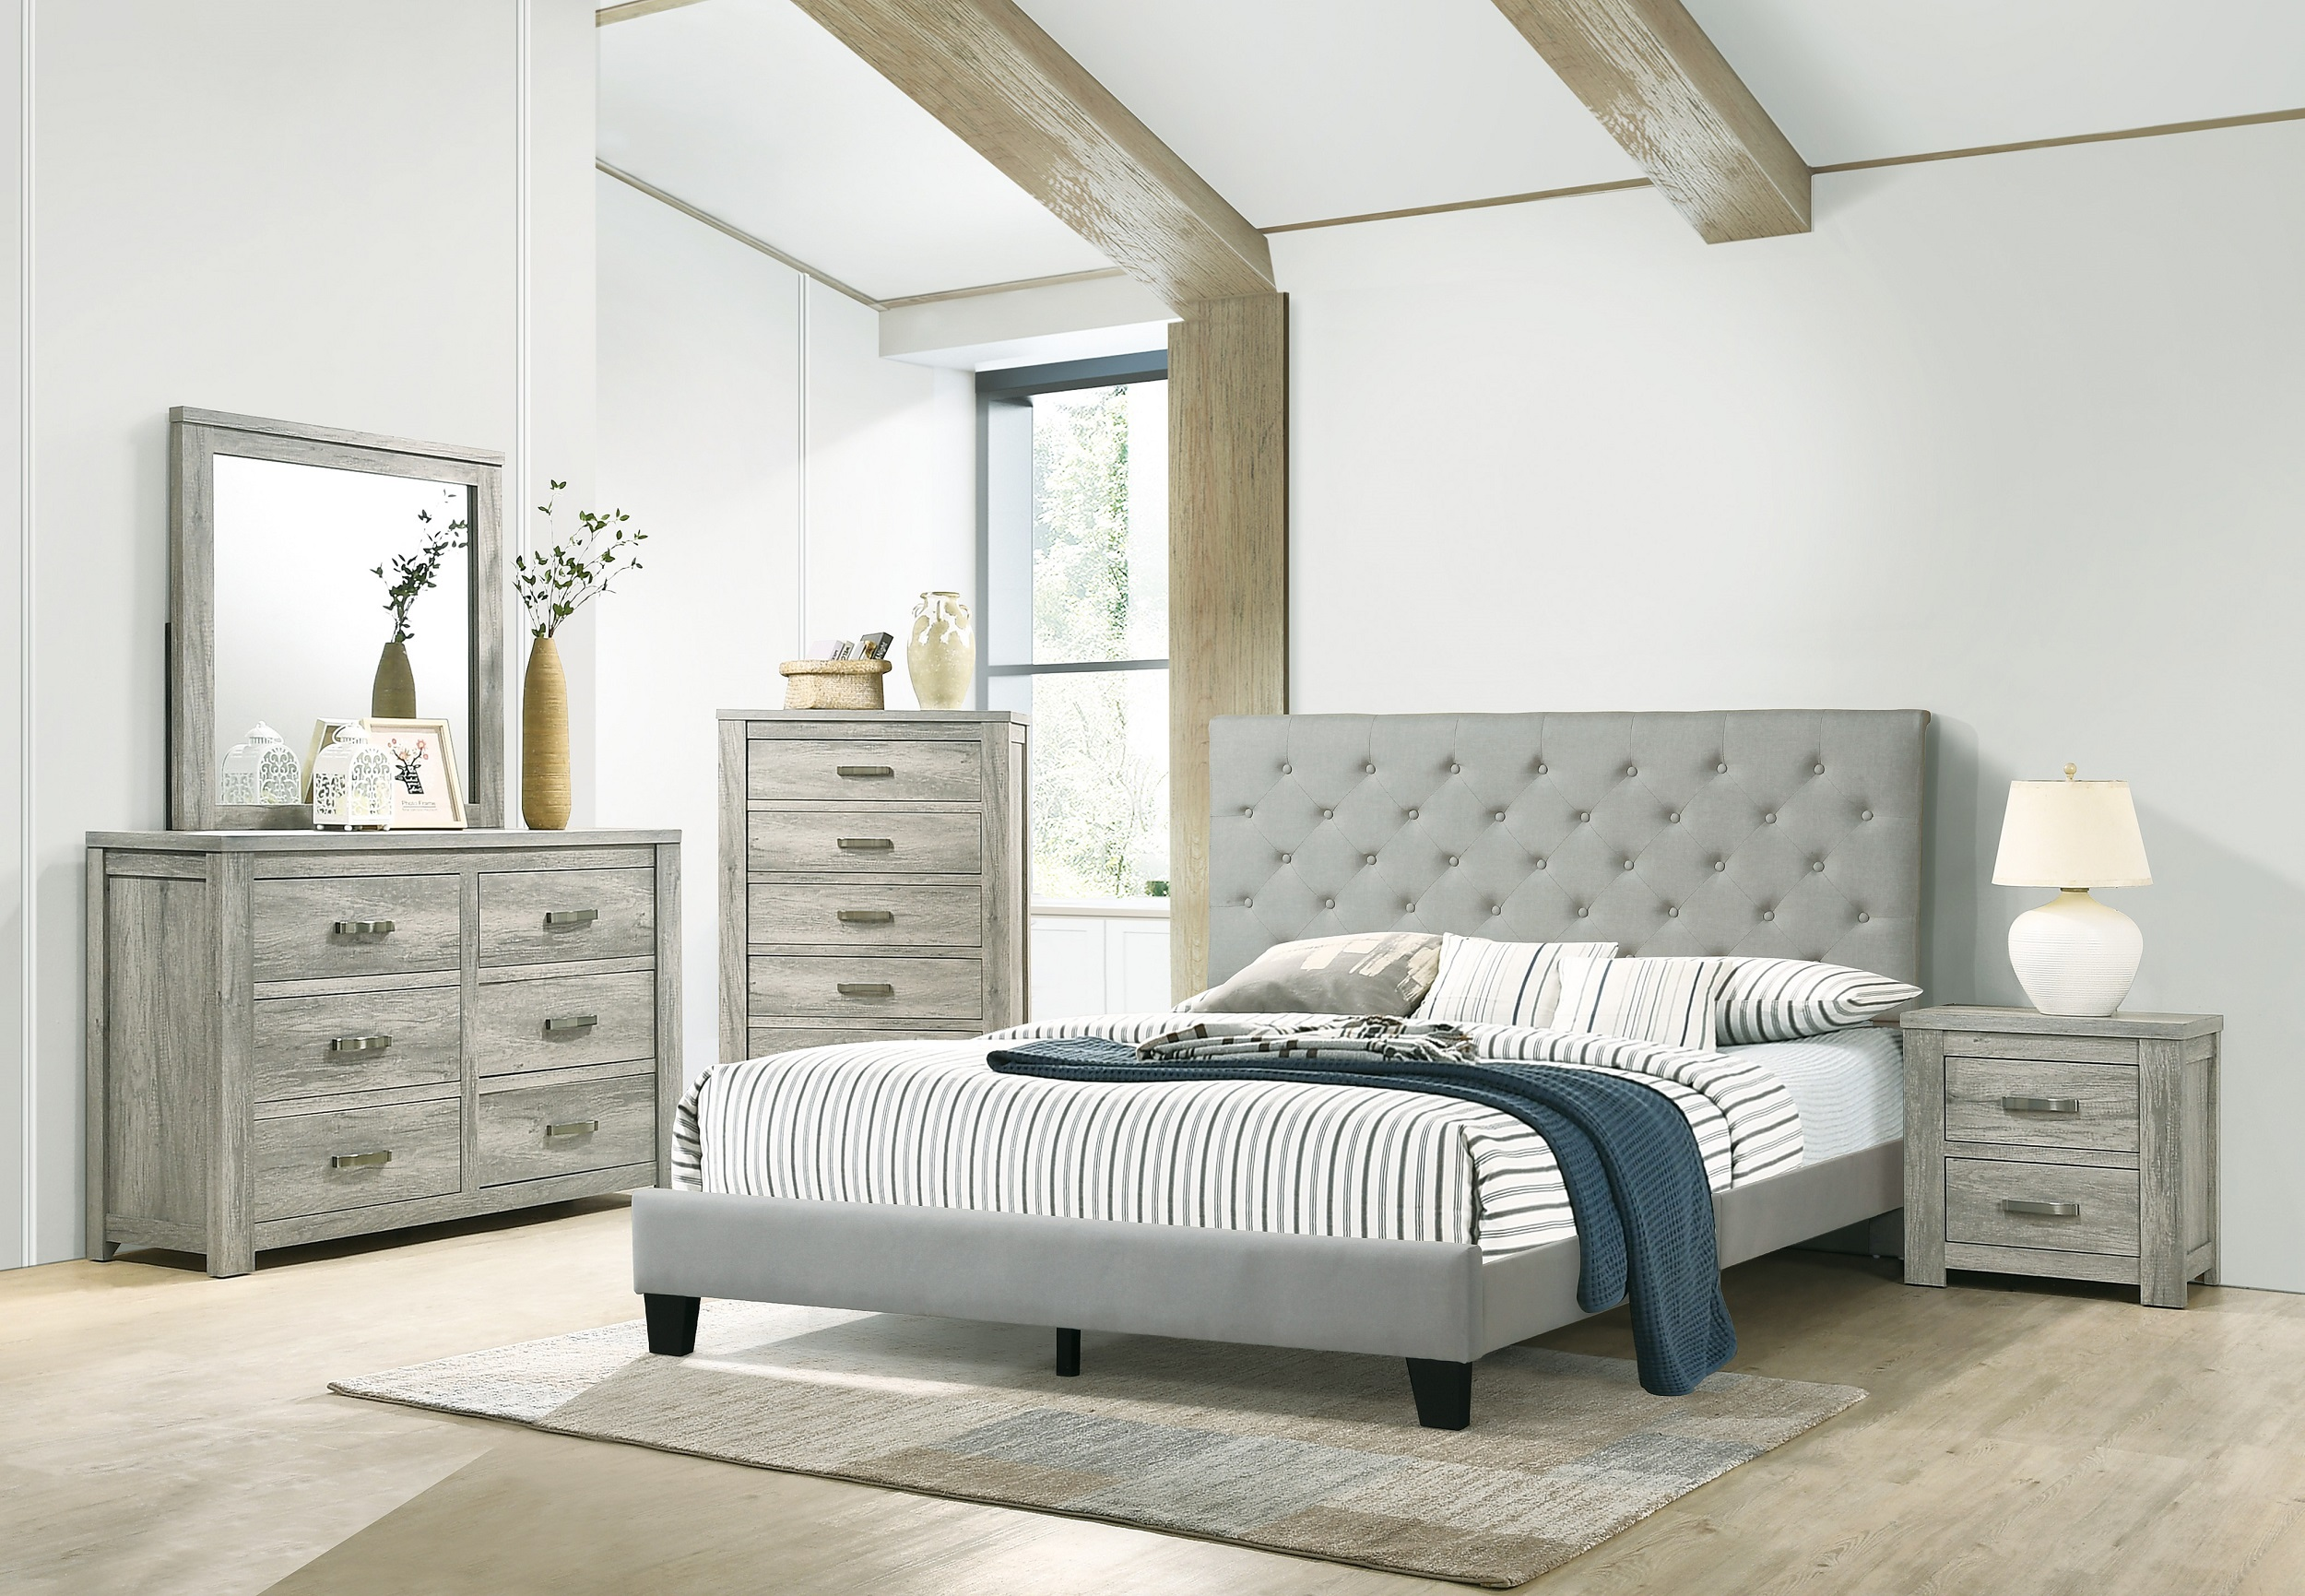 Eastern King Size Bed Dresser Mirror Nightstand 4pc Set Gray Color Bedroom Furniture Set Beautiful Bed Walmart Com Walmart Com